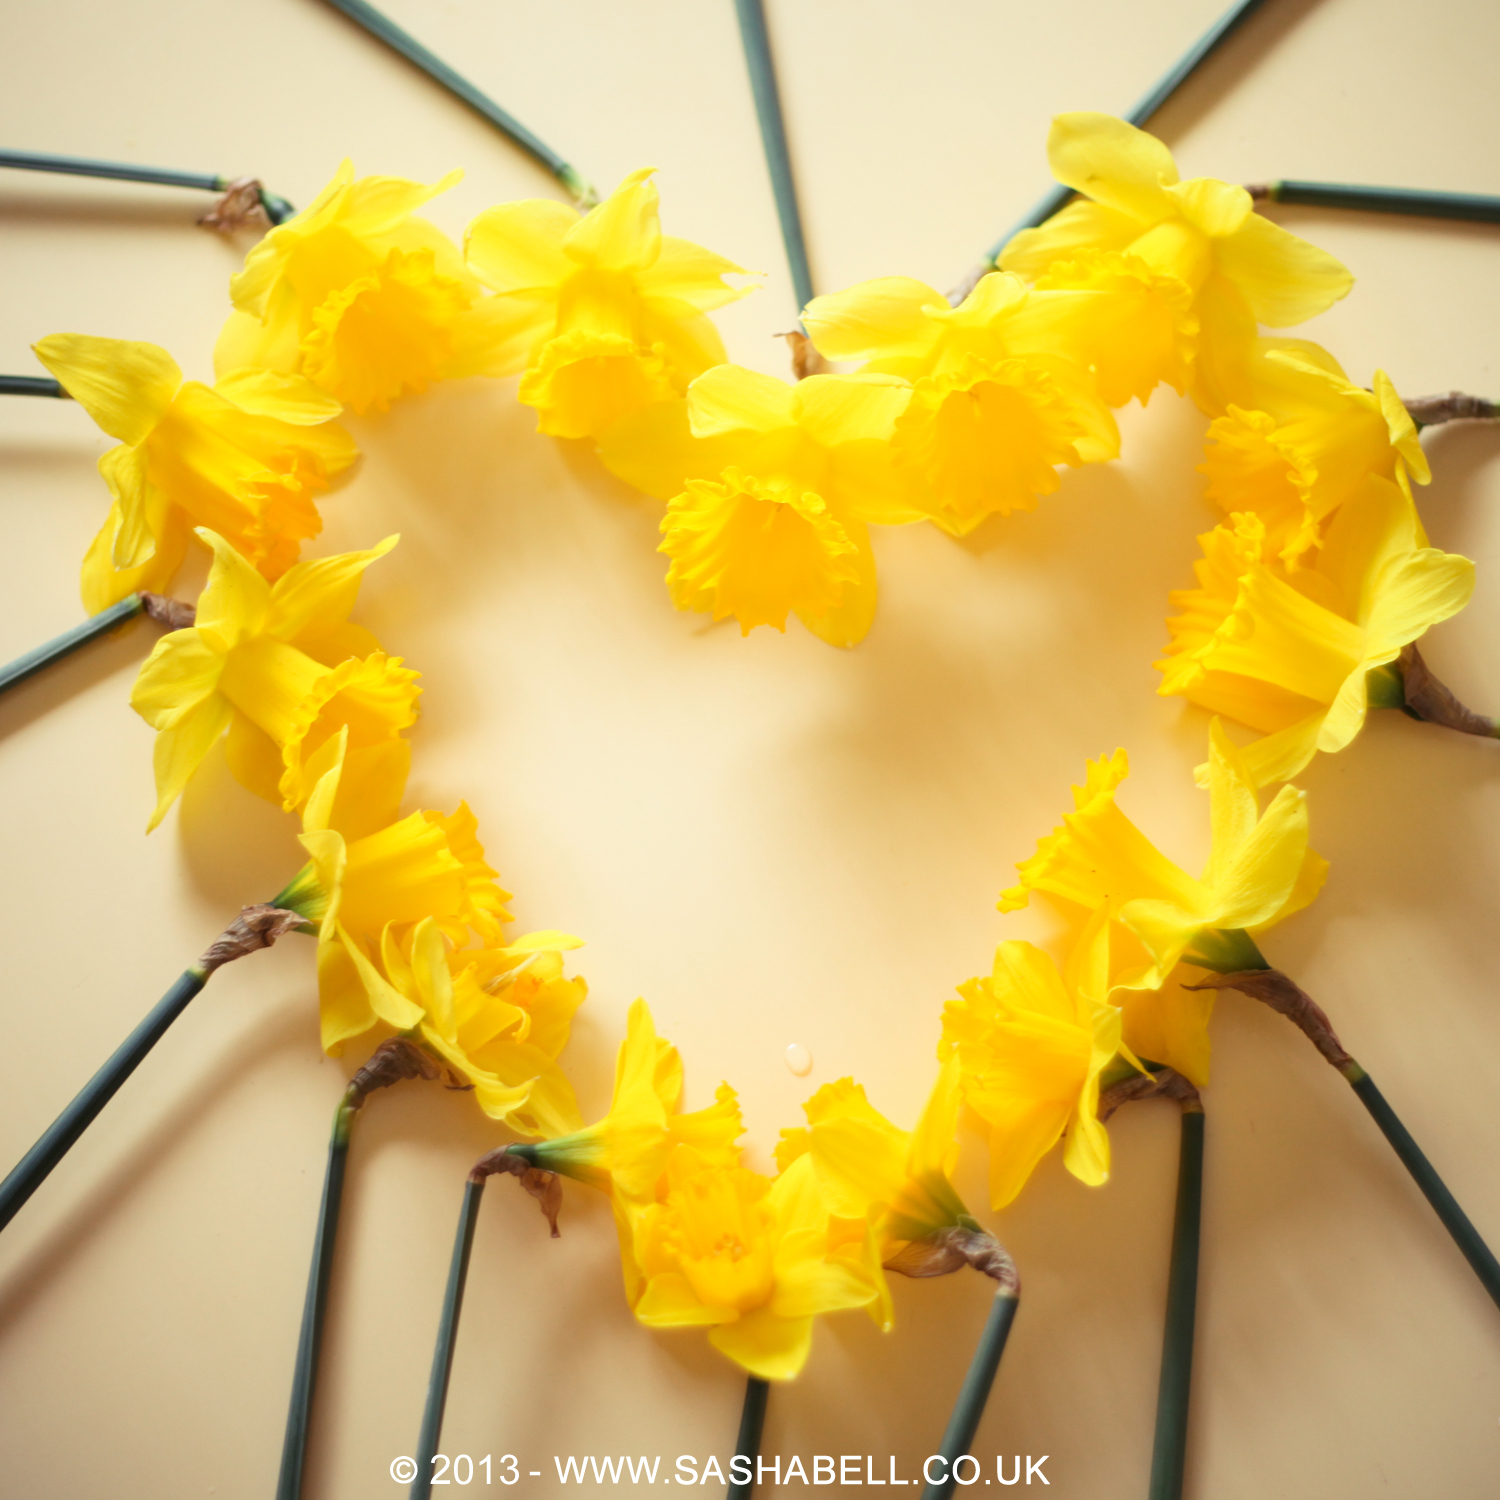 Daffodils In Heart Shape – Day 179/365